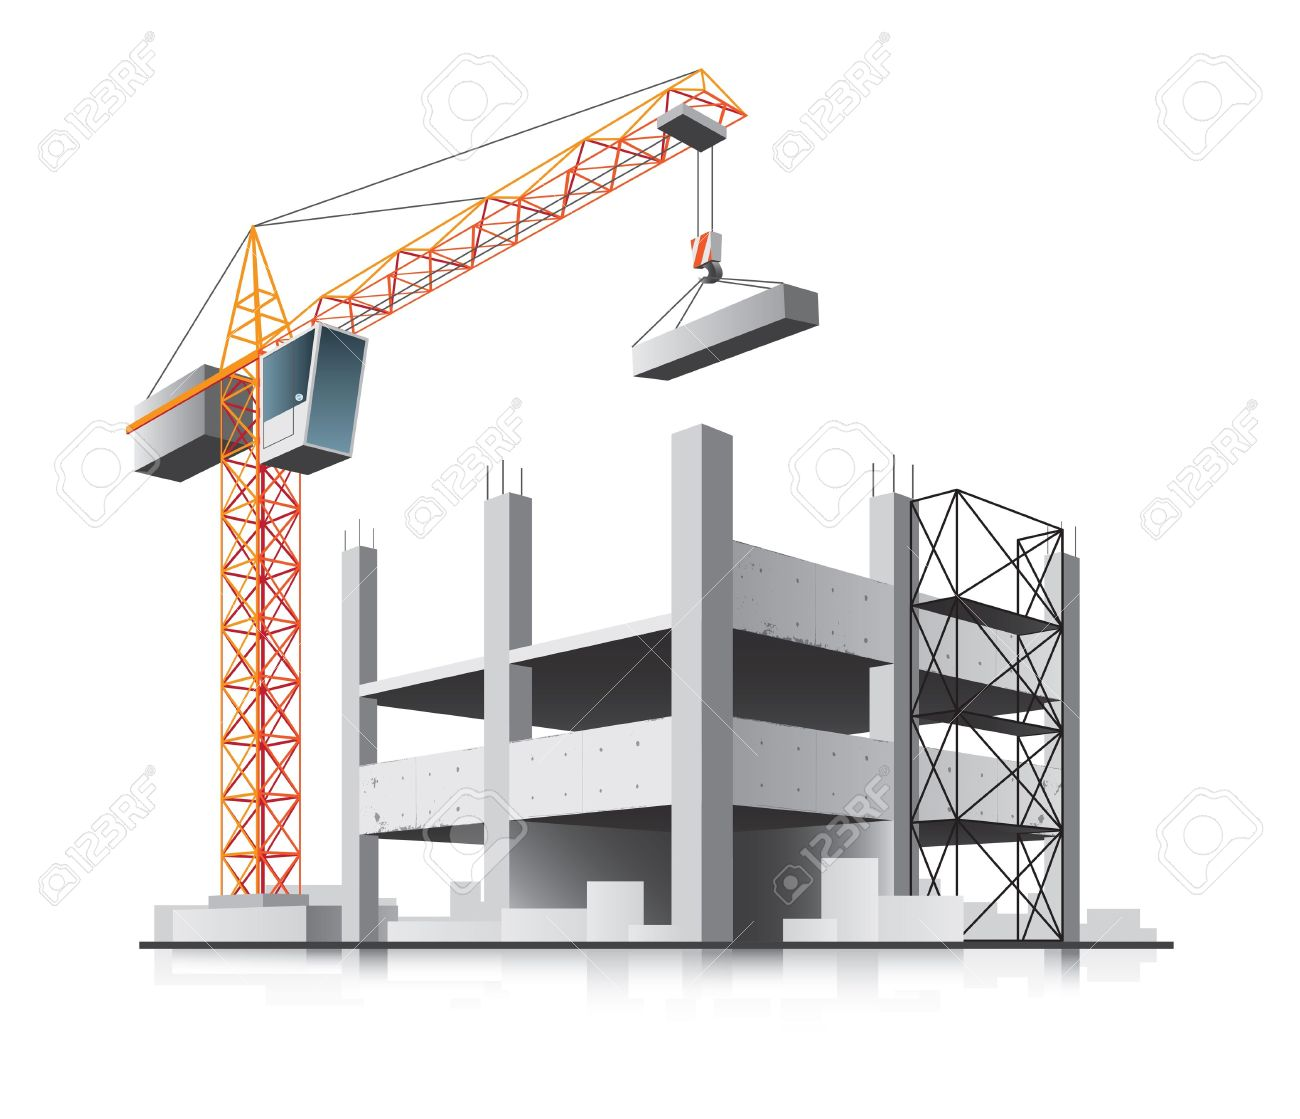 Building clipart buliding New Male Collection Building